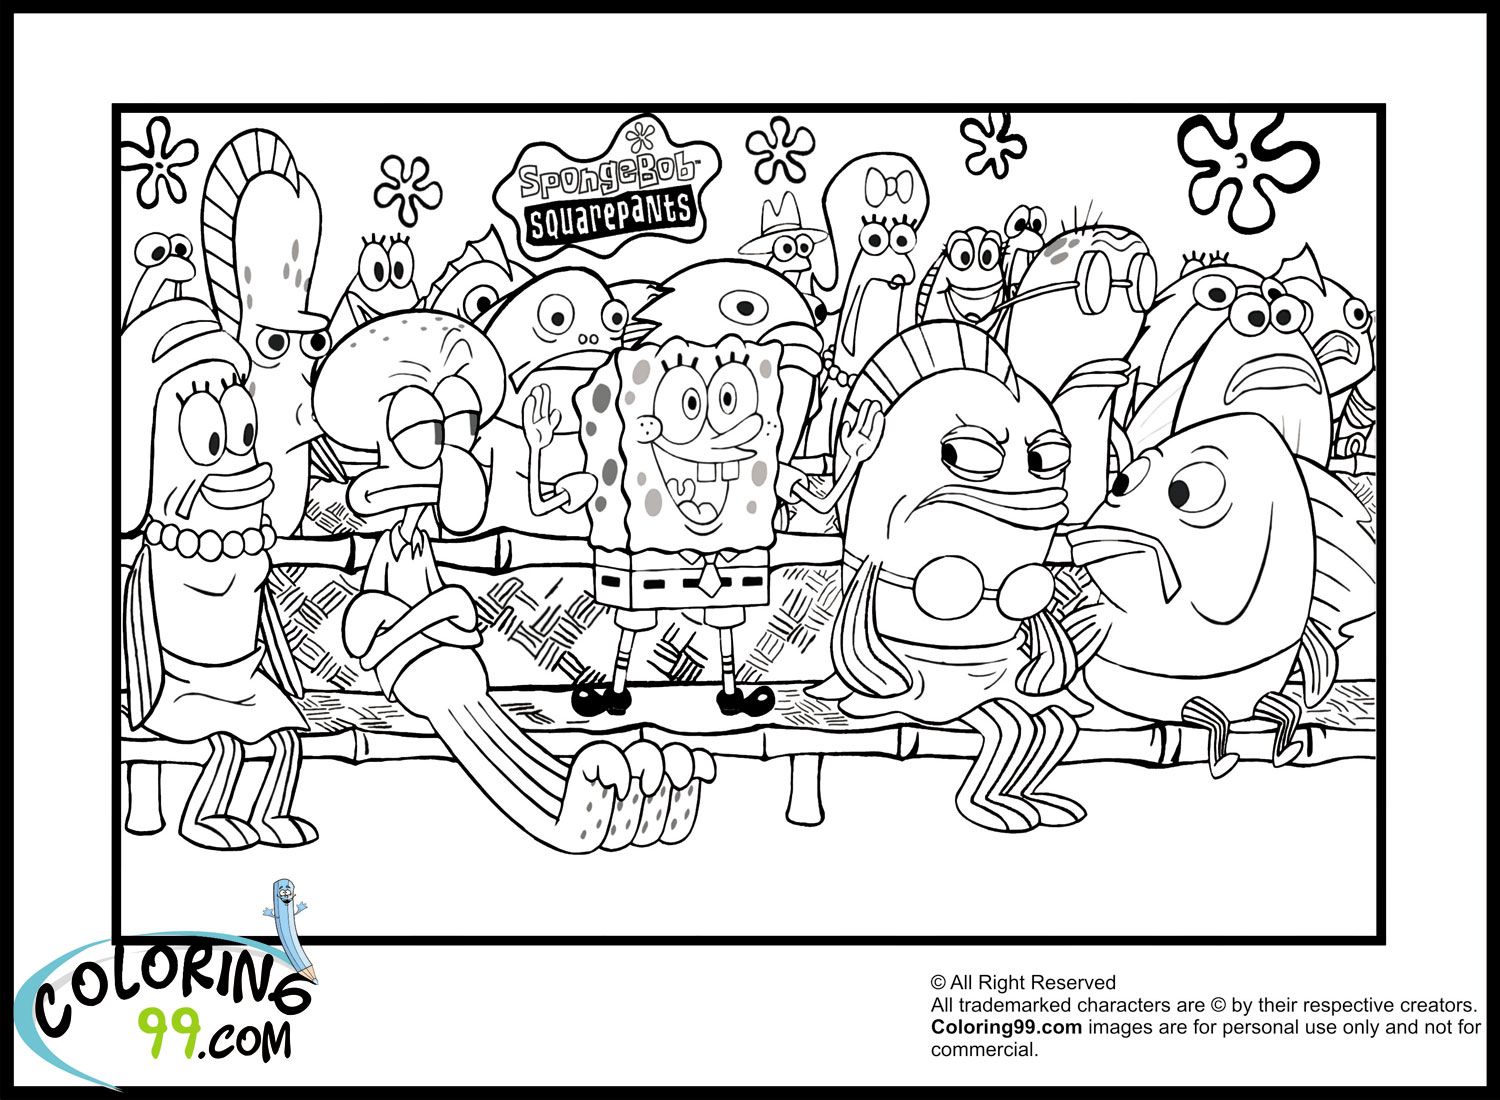 spongebob squarepants printable coloring pages - spongebob coloring pages team colors